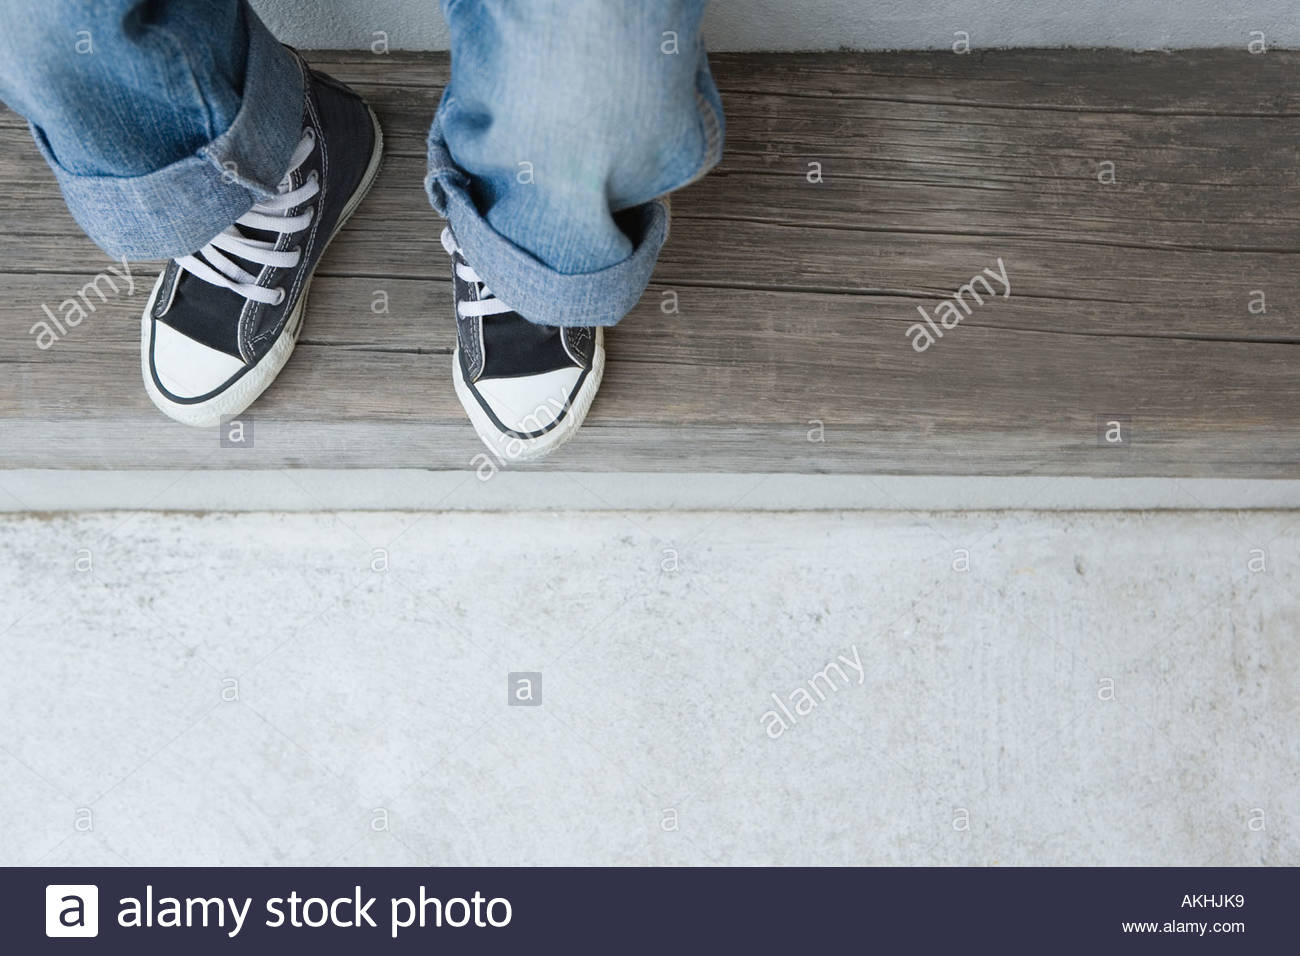 A child wearing jeans and trainers - Stock Image